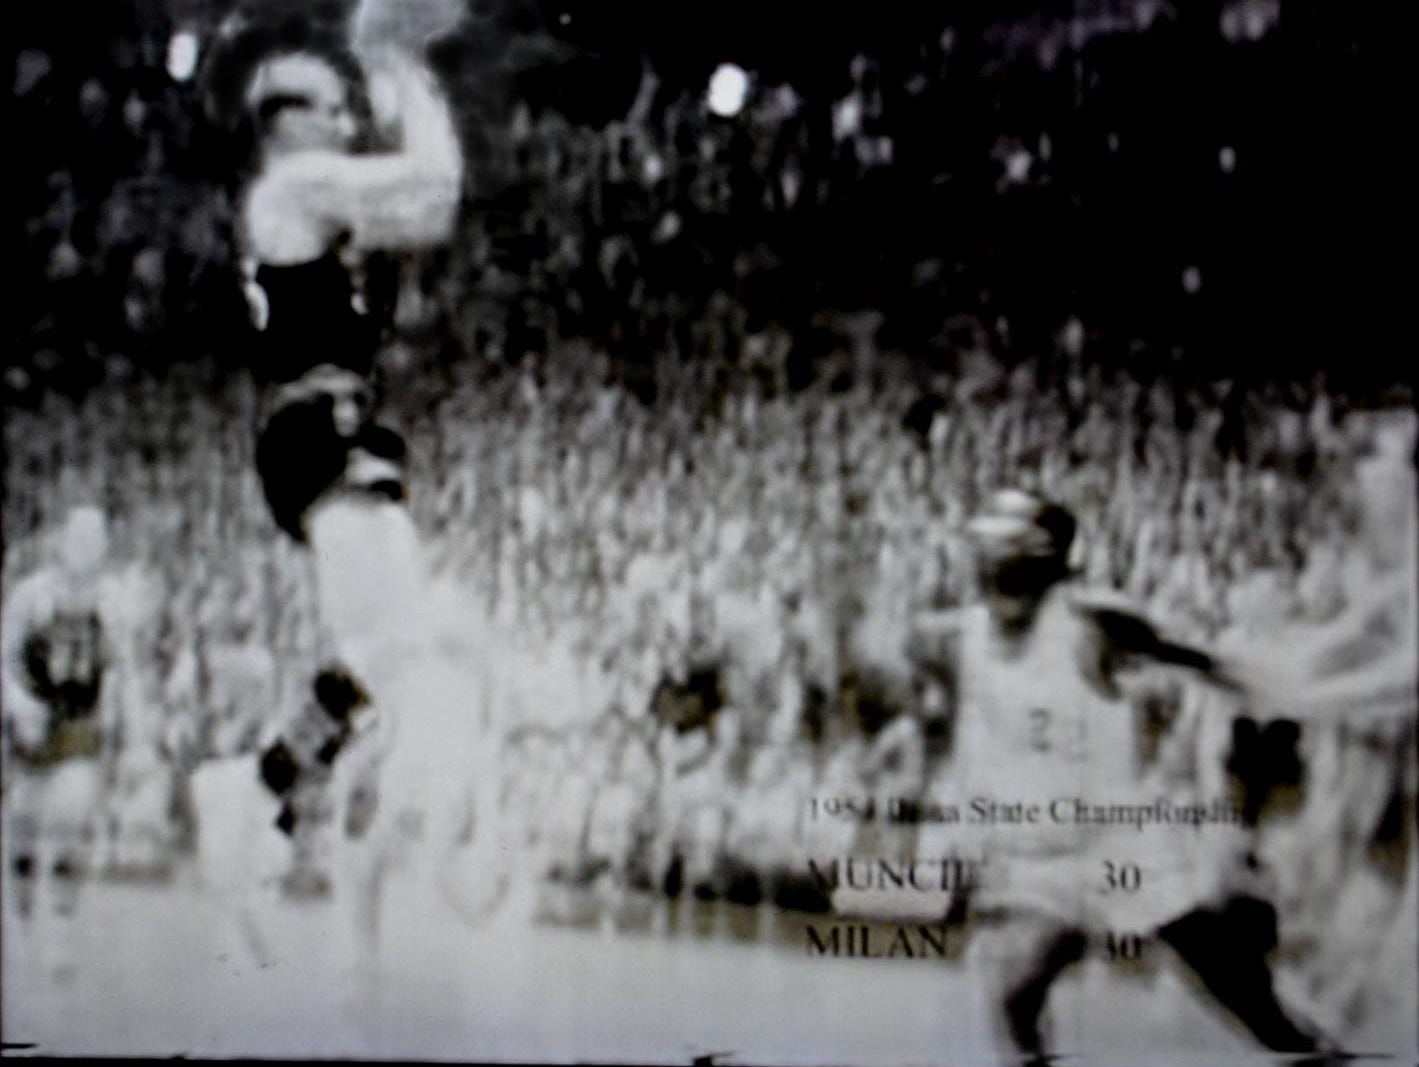 Here is a blurry image of Plump's shot frozen from game film.